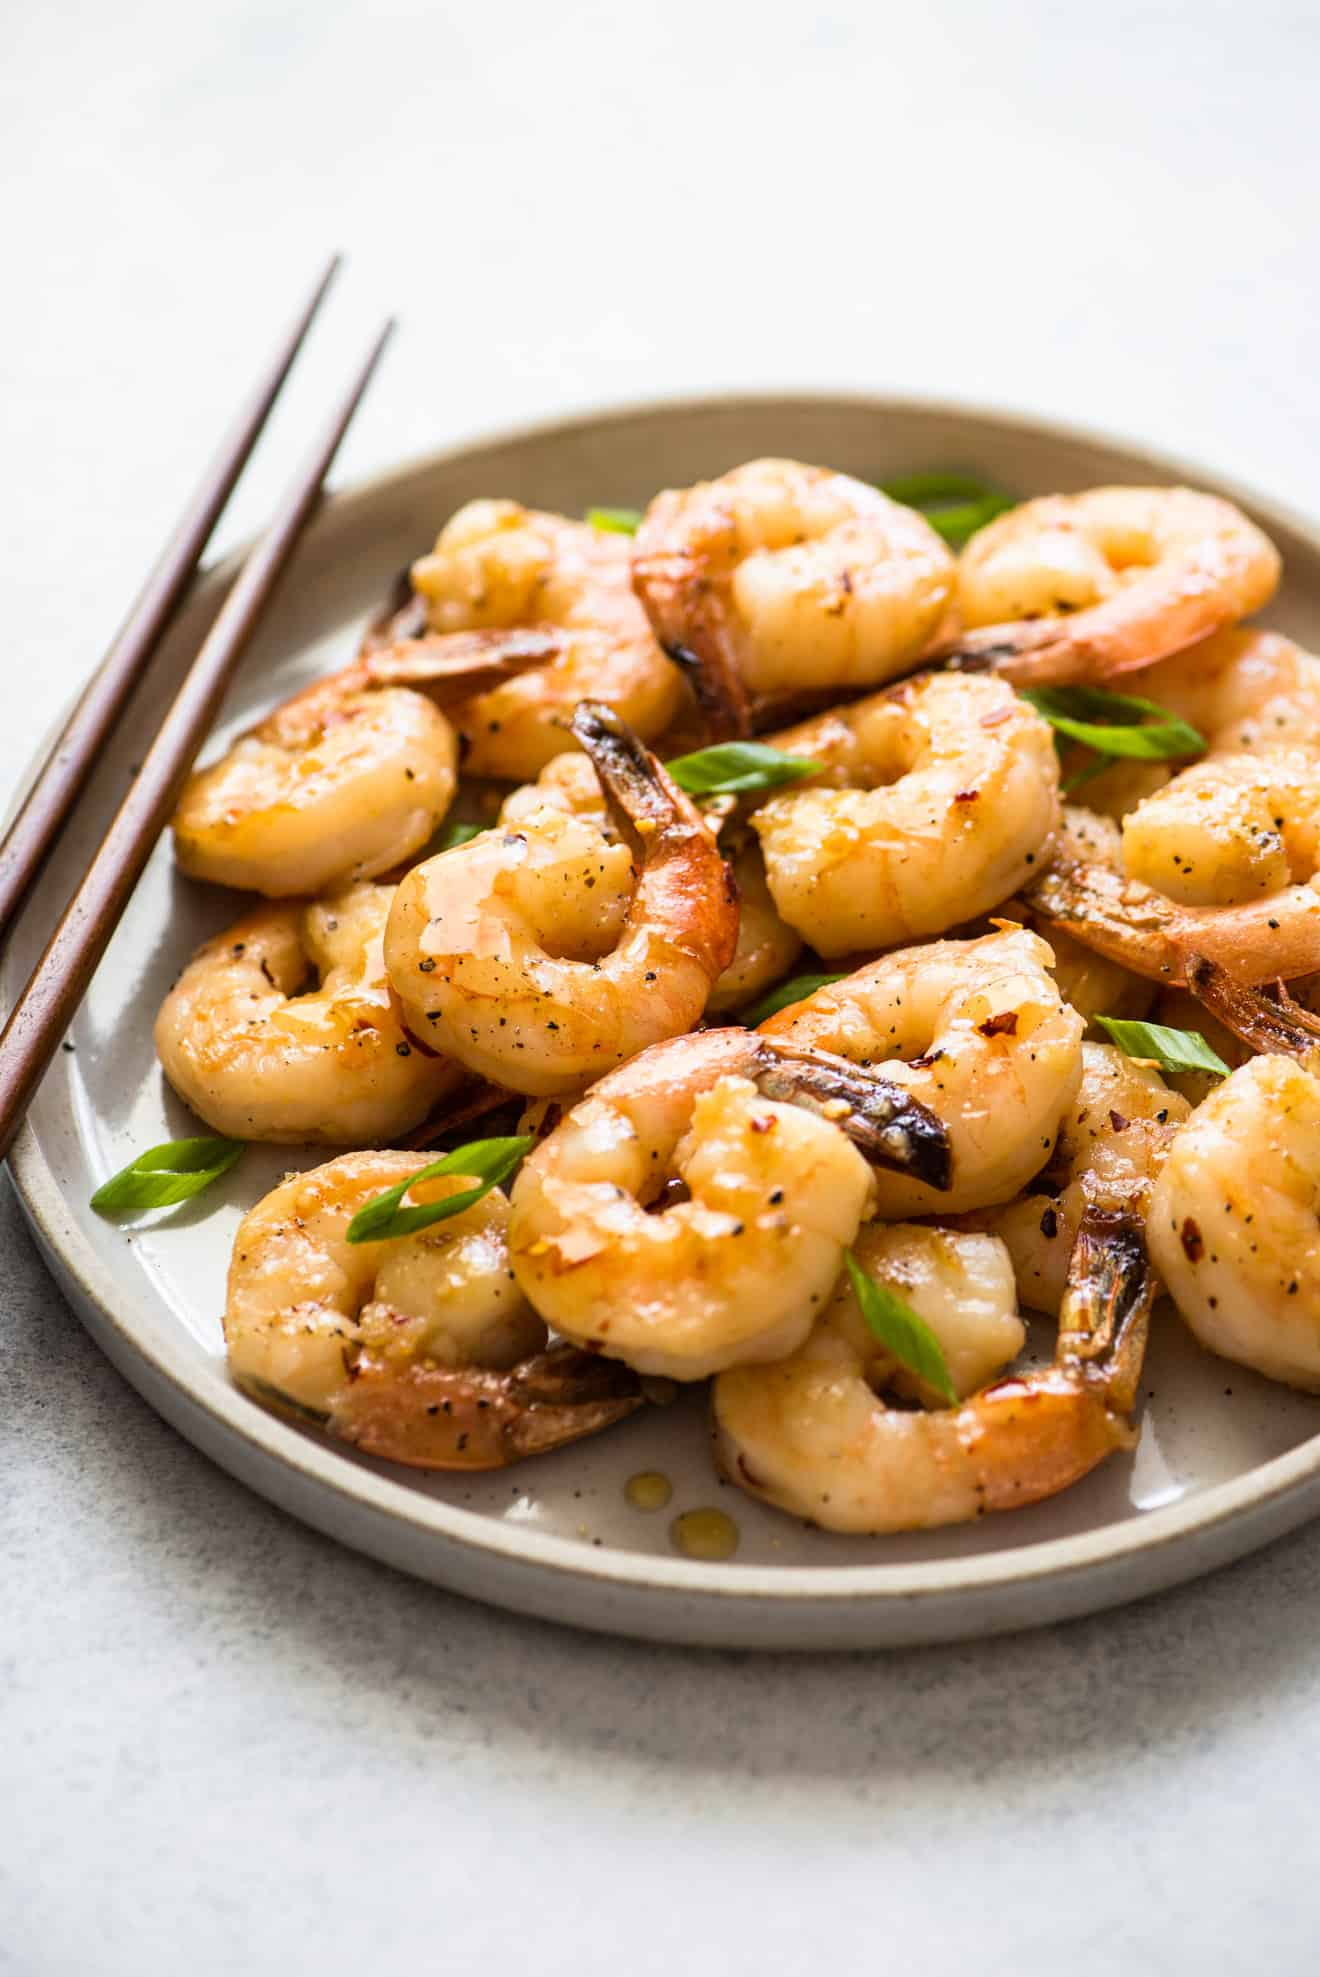 This mouth-watering Honey Chili Garlic Shrimp takes only 15 minutes to make!